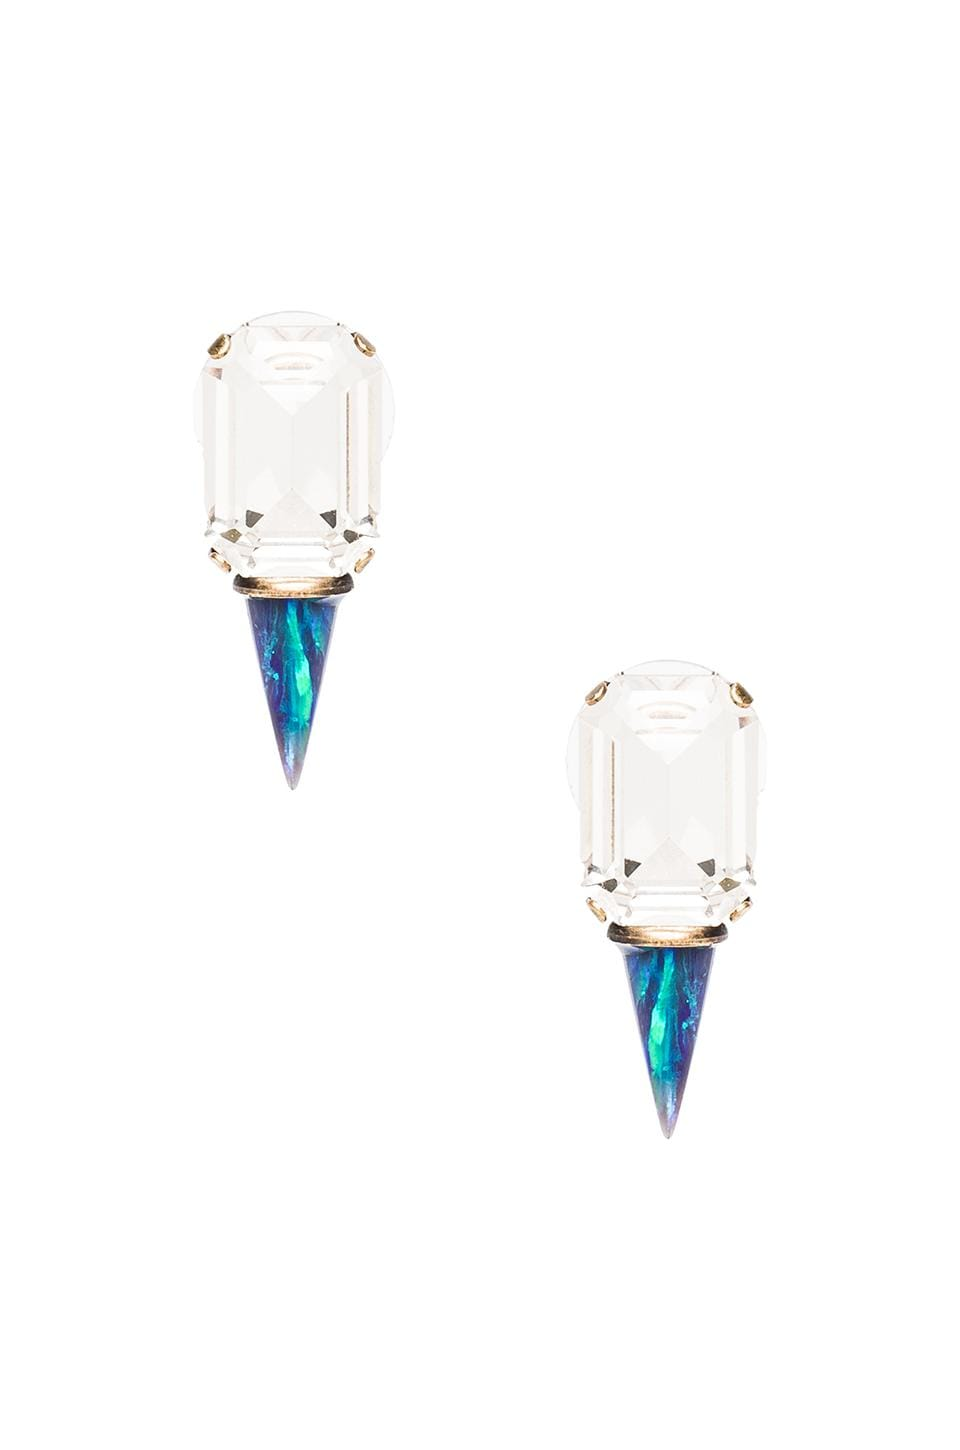 Lionette by Noa Sade Gali Earrings in Clear/Blue